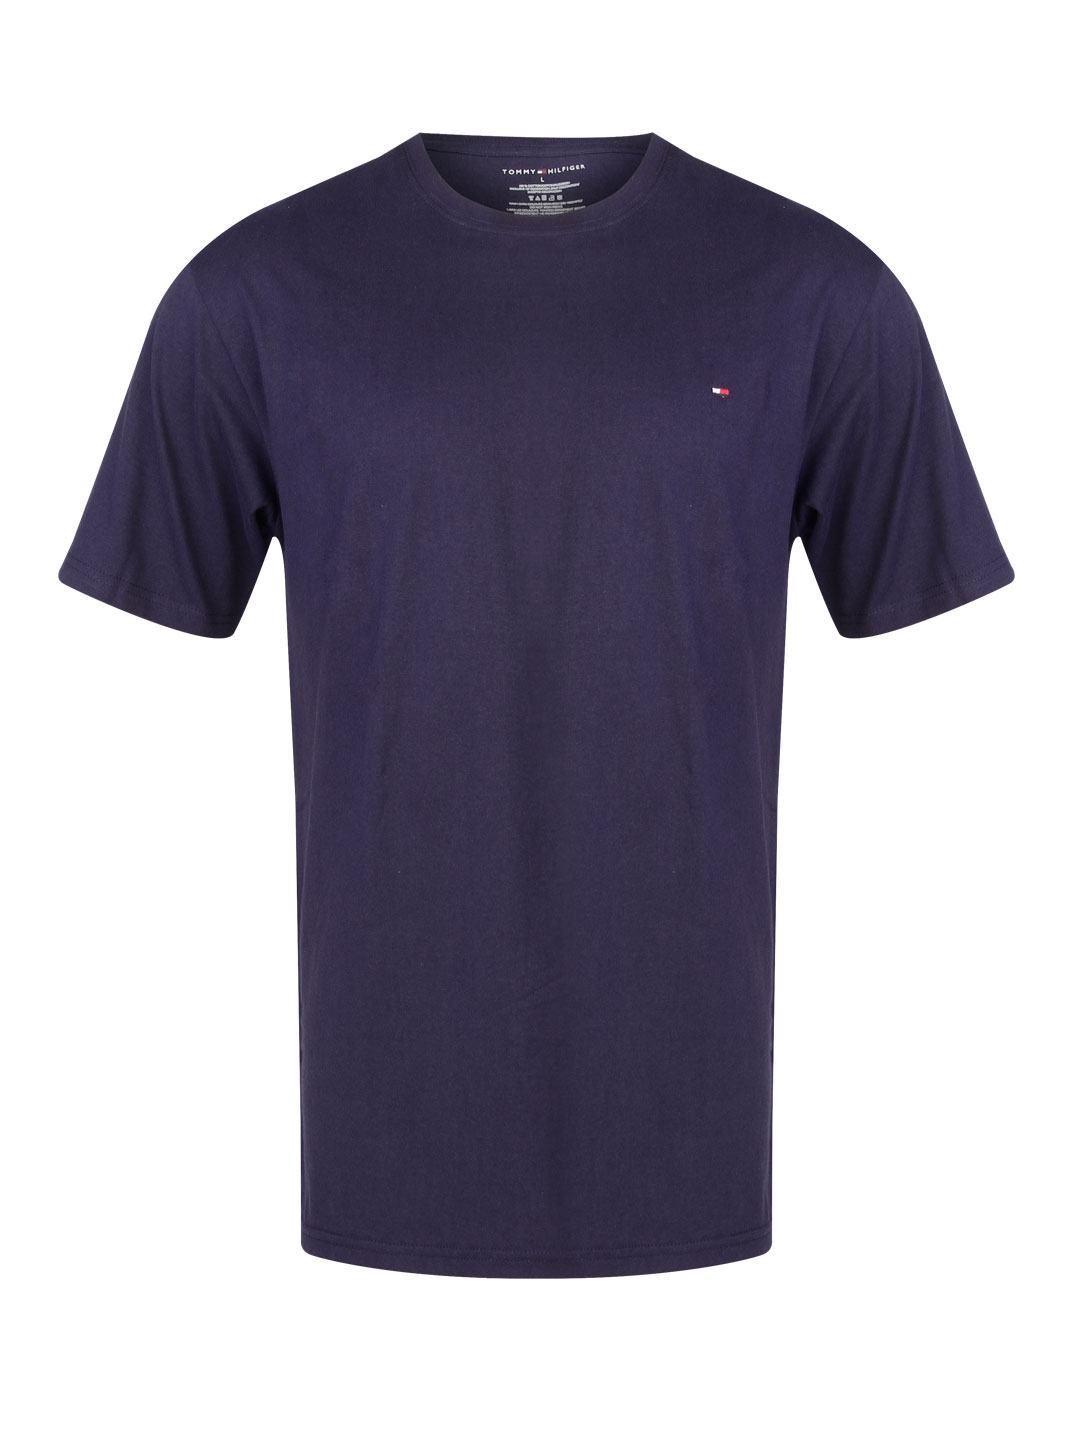 Tommy Hilfiger Navy Classic Crew Neck Tee 1